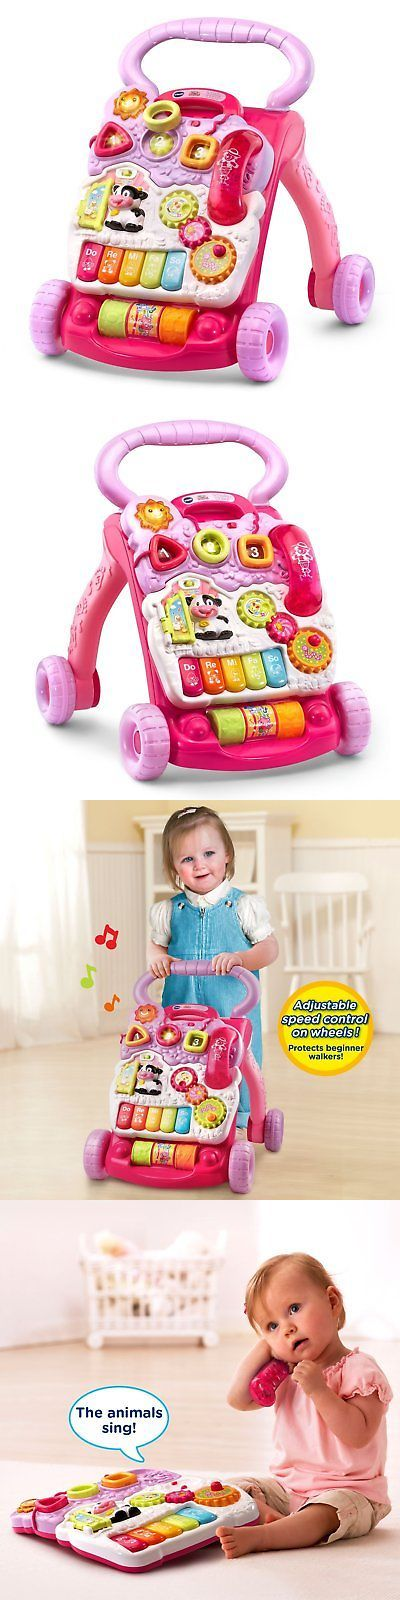 baby and kid stuff: Baby Toddler Infant Learn To Walk Push Toy Begining Walking Practice Play Girl -> BUY IT NOW ONLY: $37.17 on eBay!